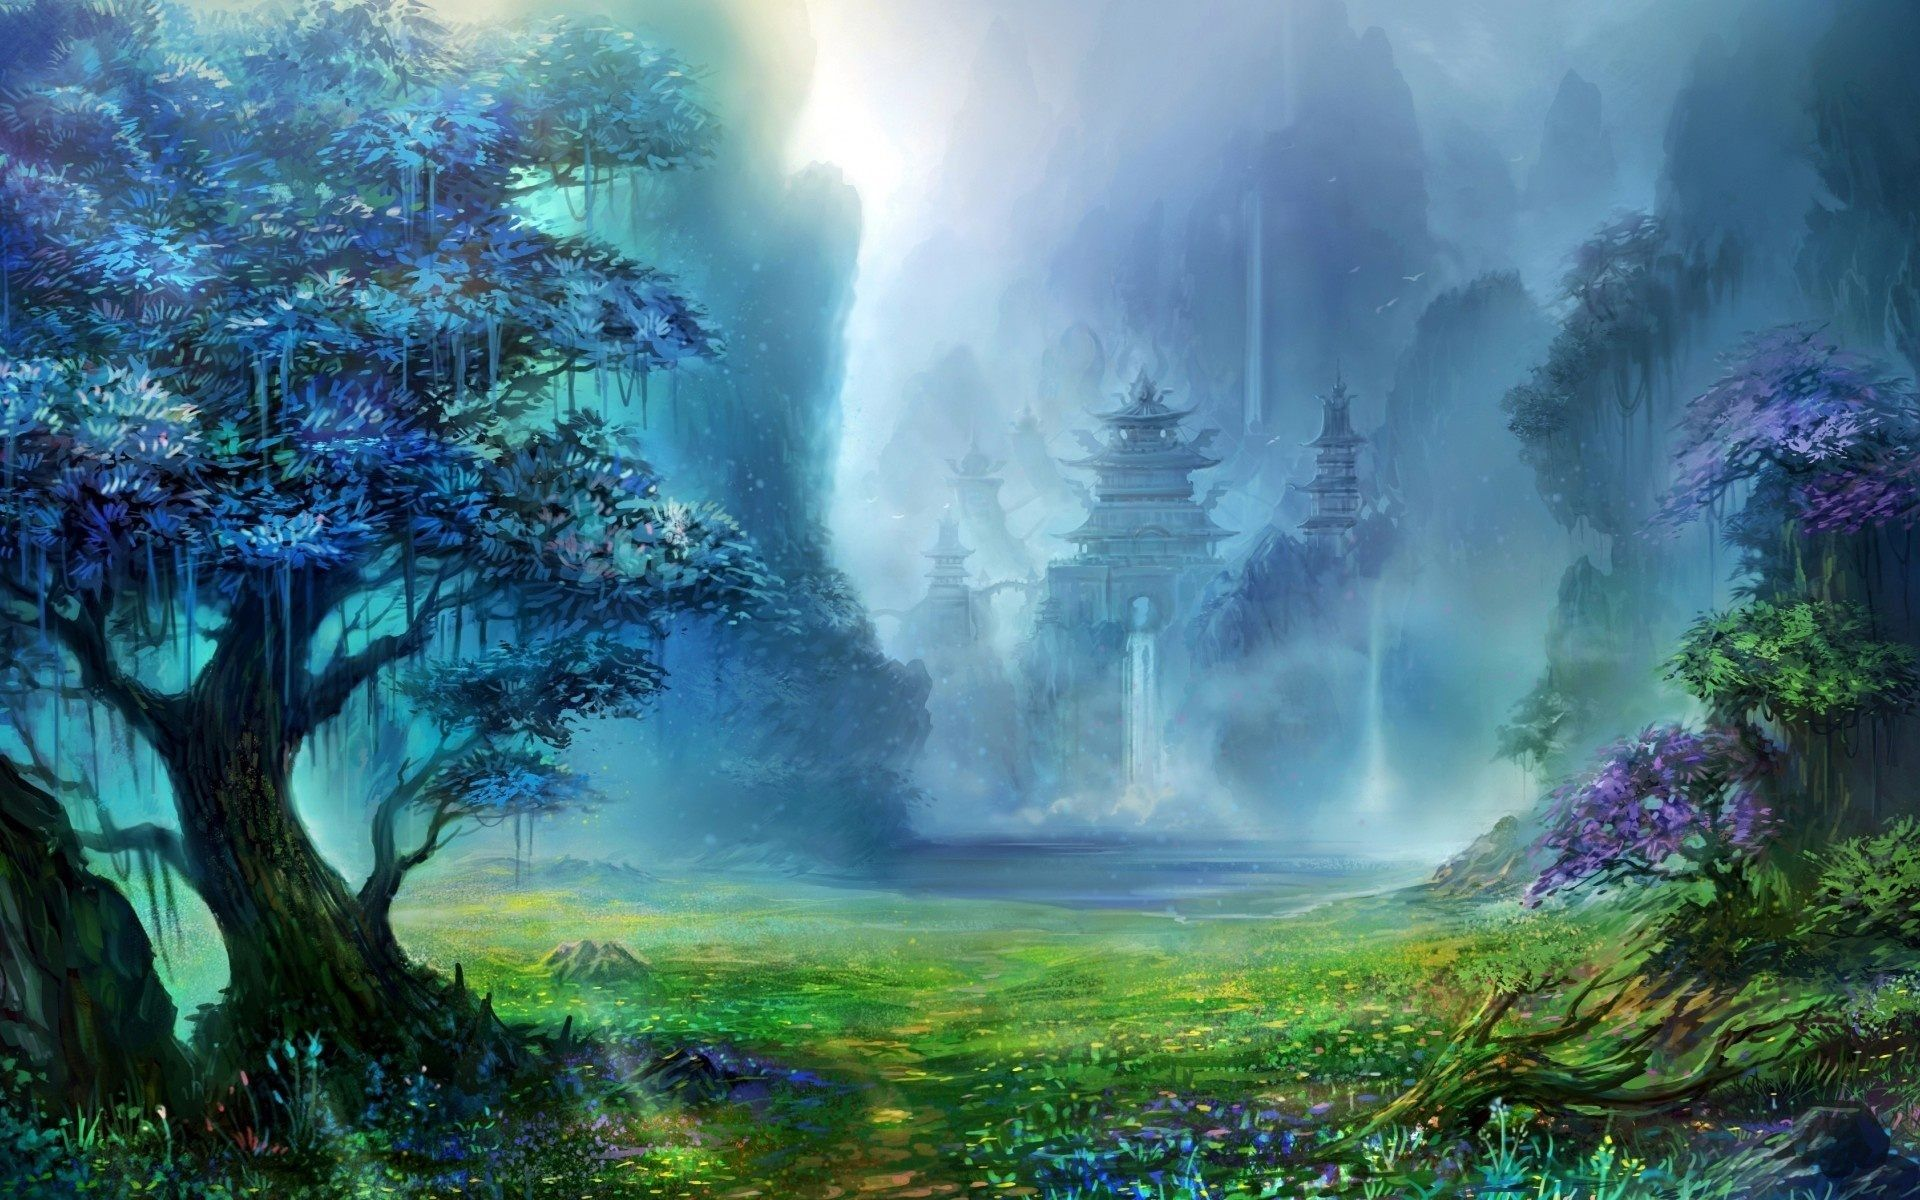 Fantasy Forest Wallpaper High Quality Resolution With Wallpaper Hd Resolution On Fantasy Category Similar W Fantasy Landscape Waterfall Artwork Castle Painting